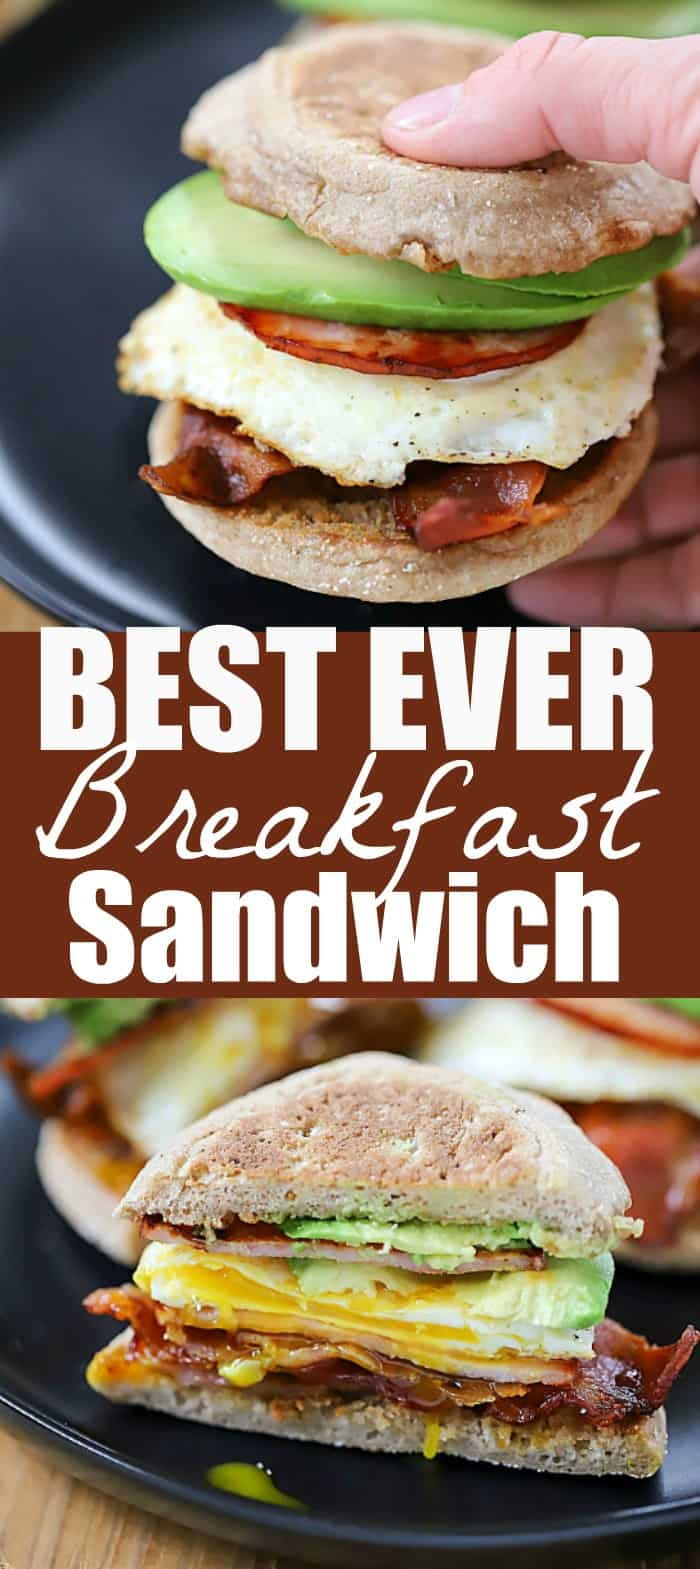 Start your morning off right with this Egg, Bacon and Avocado Breakfast Sandwich! A buttered whole wheat english muffin filled with crispy bacon, canadian bacon, fried egg and avocado. So yummy and definitely the best breakfast recipe ever!